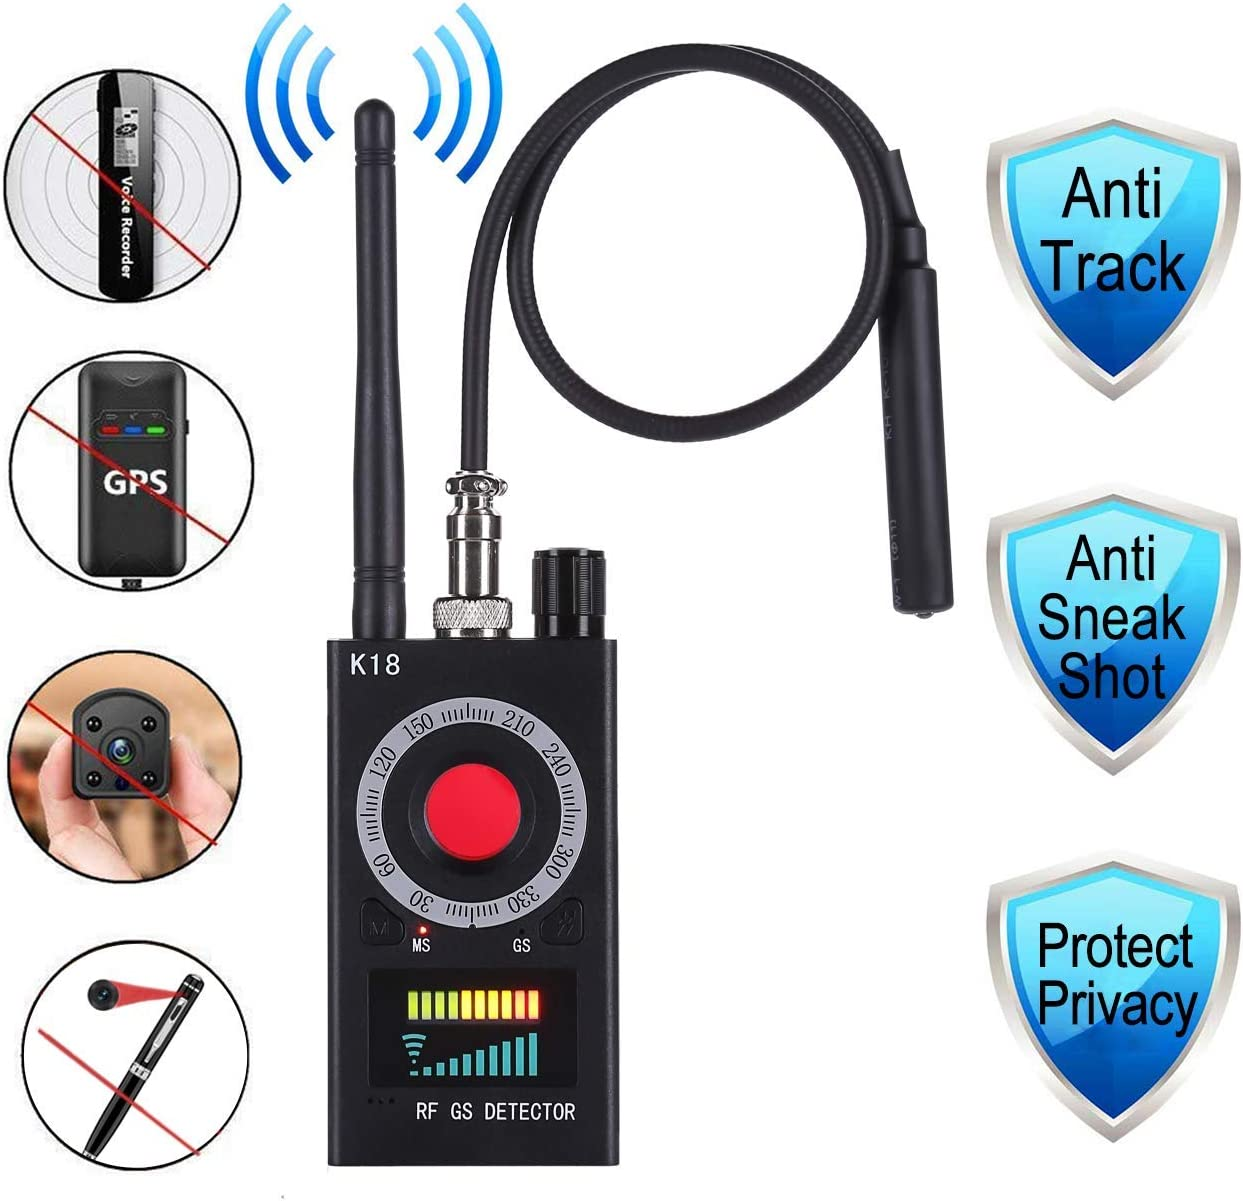 Anti Spy Detector, RF Detector & Camera Finder Anti-spy Hidden Camera Bug Sweeper GPS Audio Spy Scanner Radio Wireless Signal Electronic Tracker US Plug.